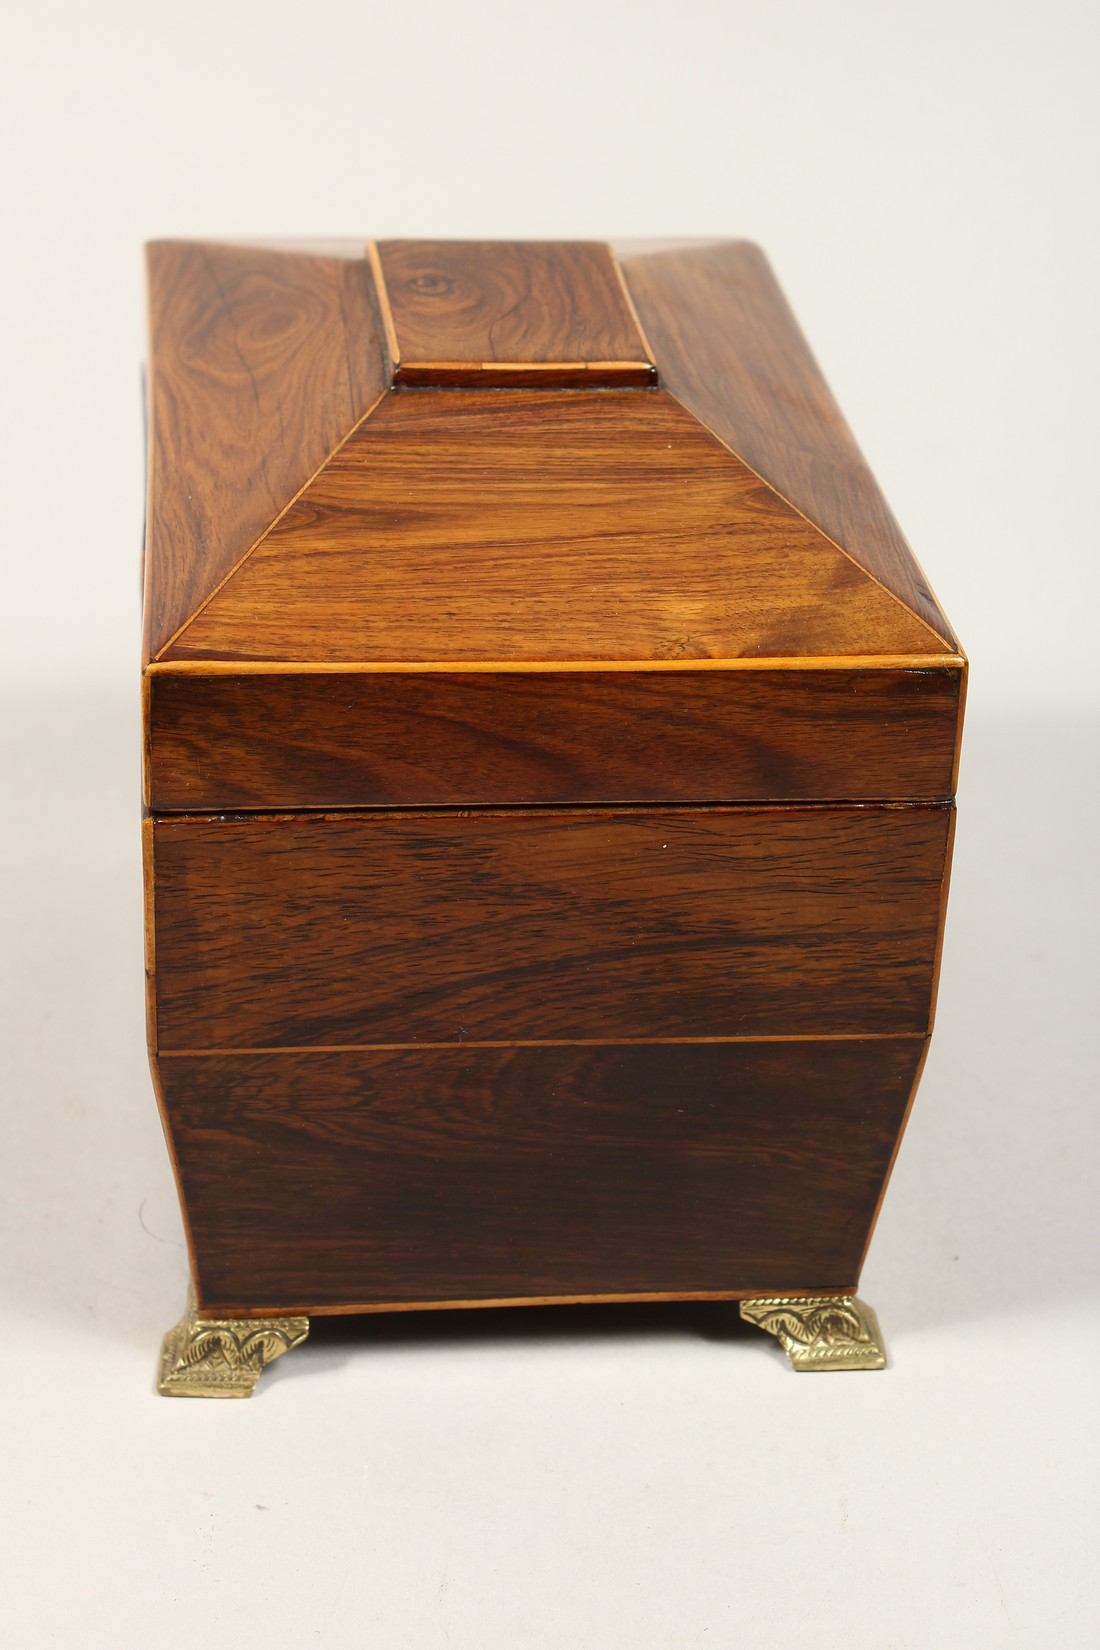 A REGENCY ROSEWOOD DOMED TOP TWO DIVISION TEA CADDY with iron escutcheon on brass bracket feet. 7. - Image 2 of 7